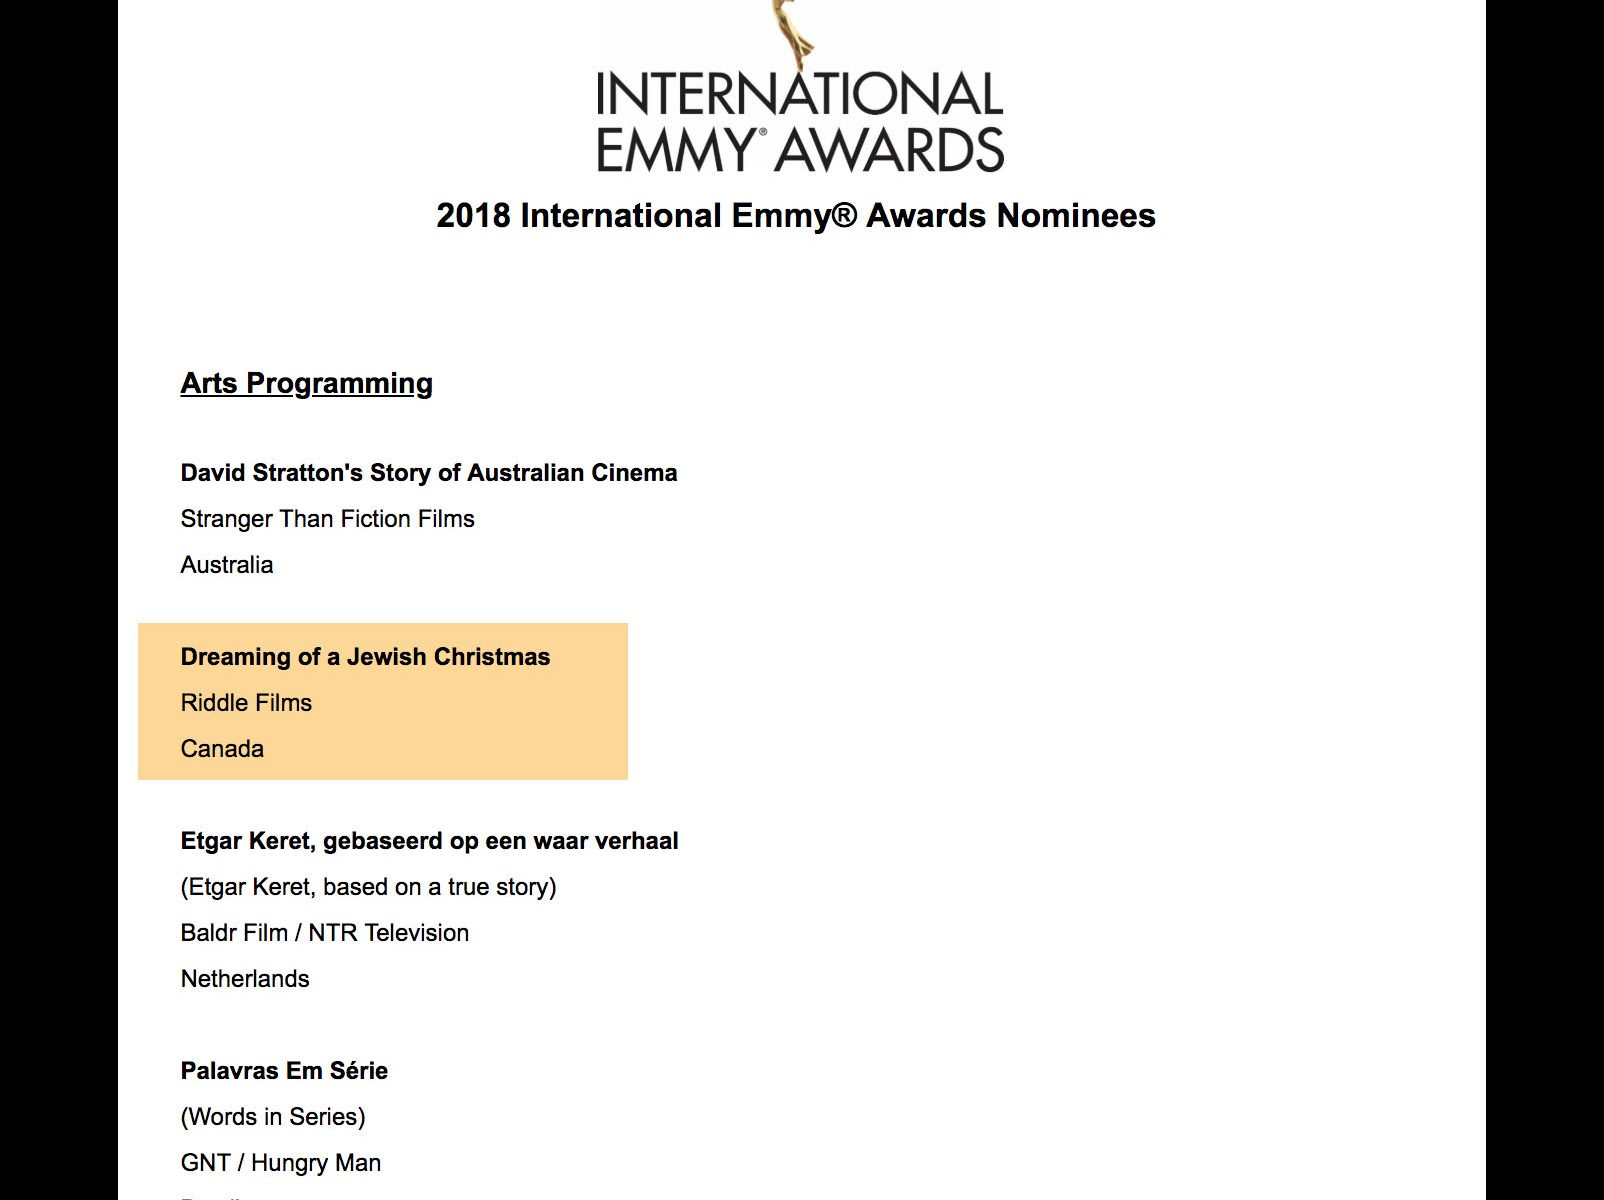 Riddle Films is Nominated for an International Emmy - 2018